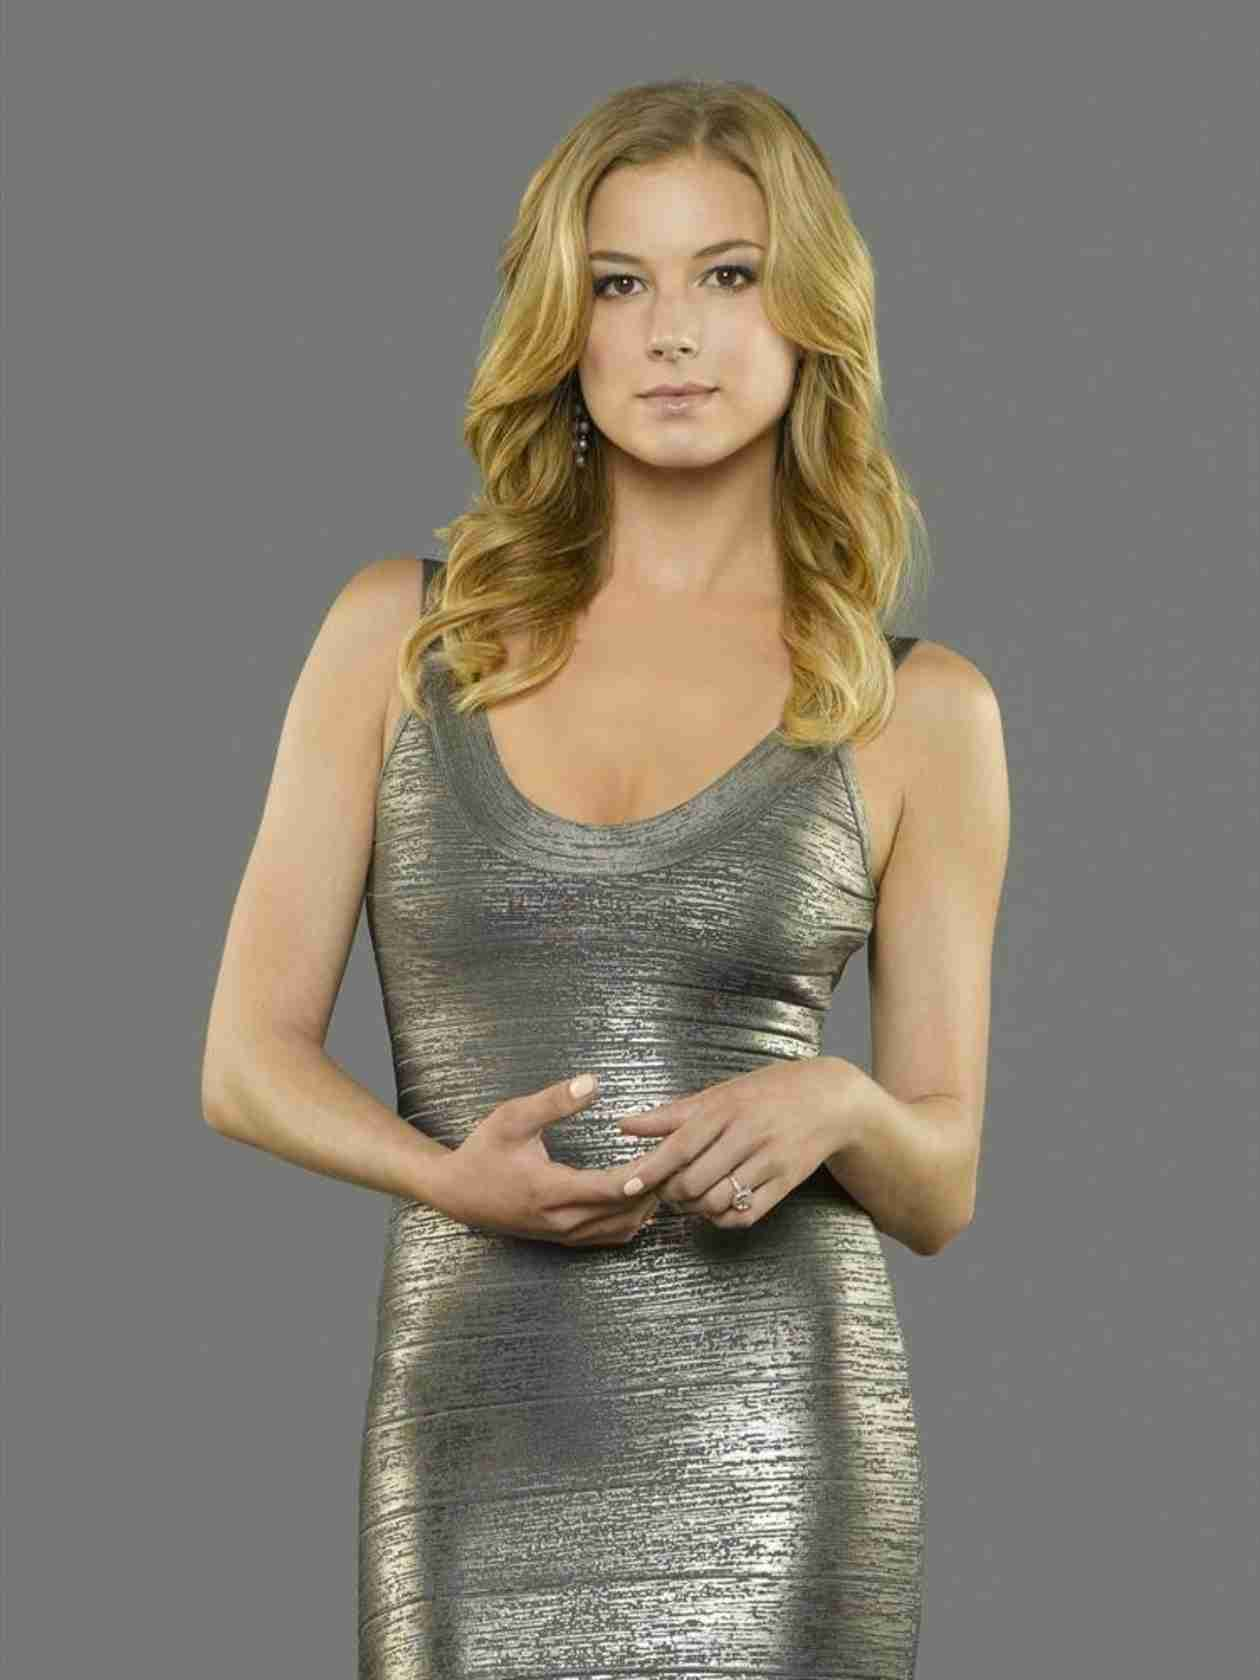 Revenge Season 3 Spoiler: A Death That Made Emily VanCamp Cry